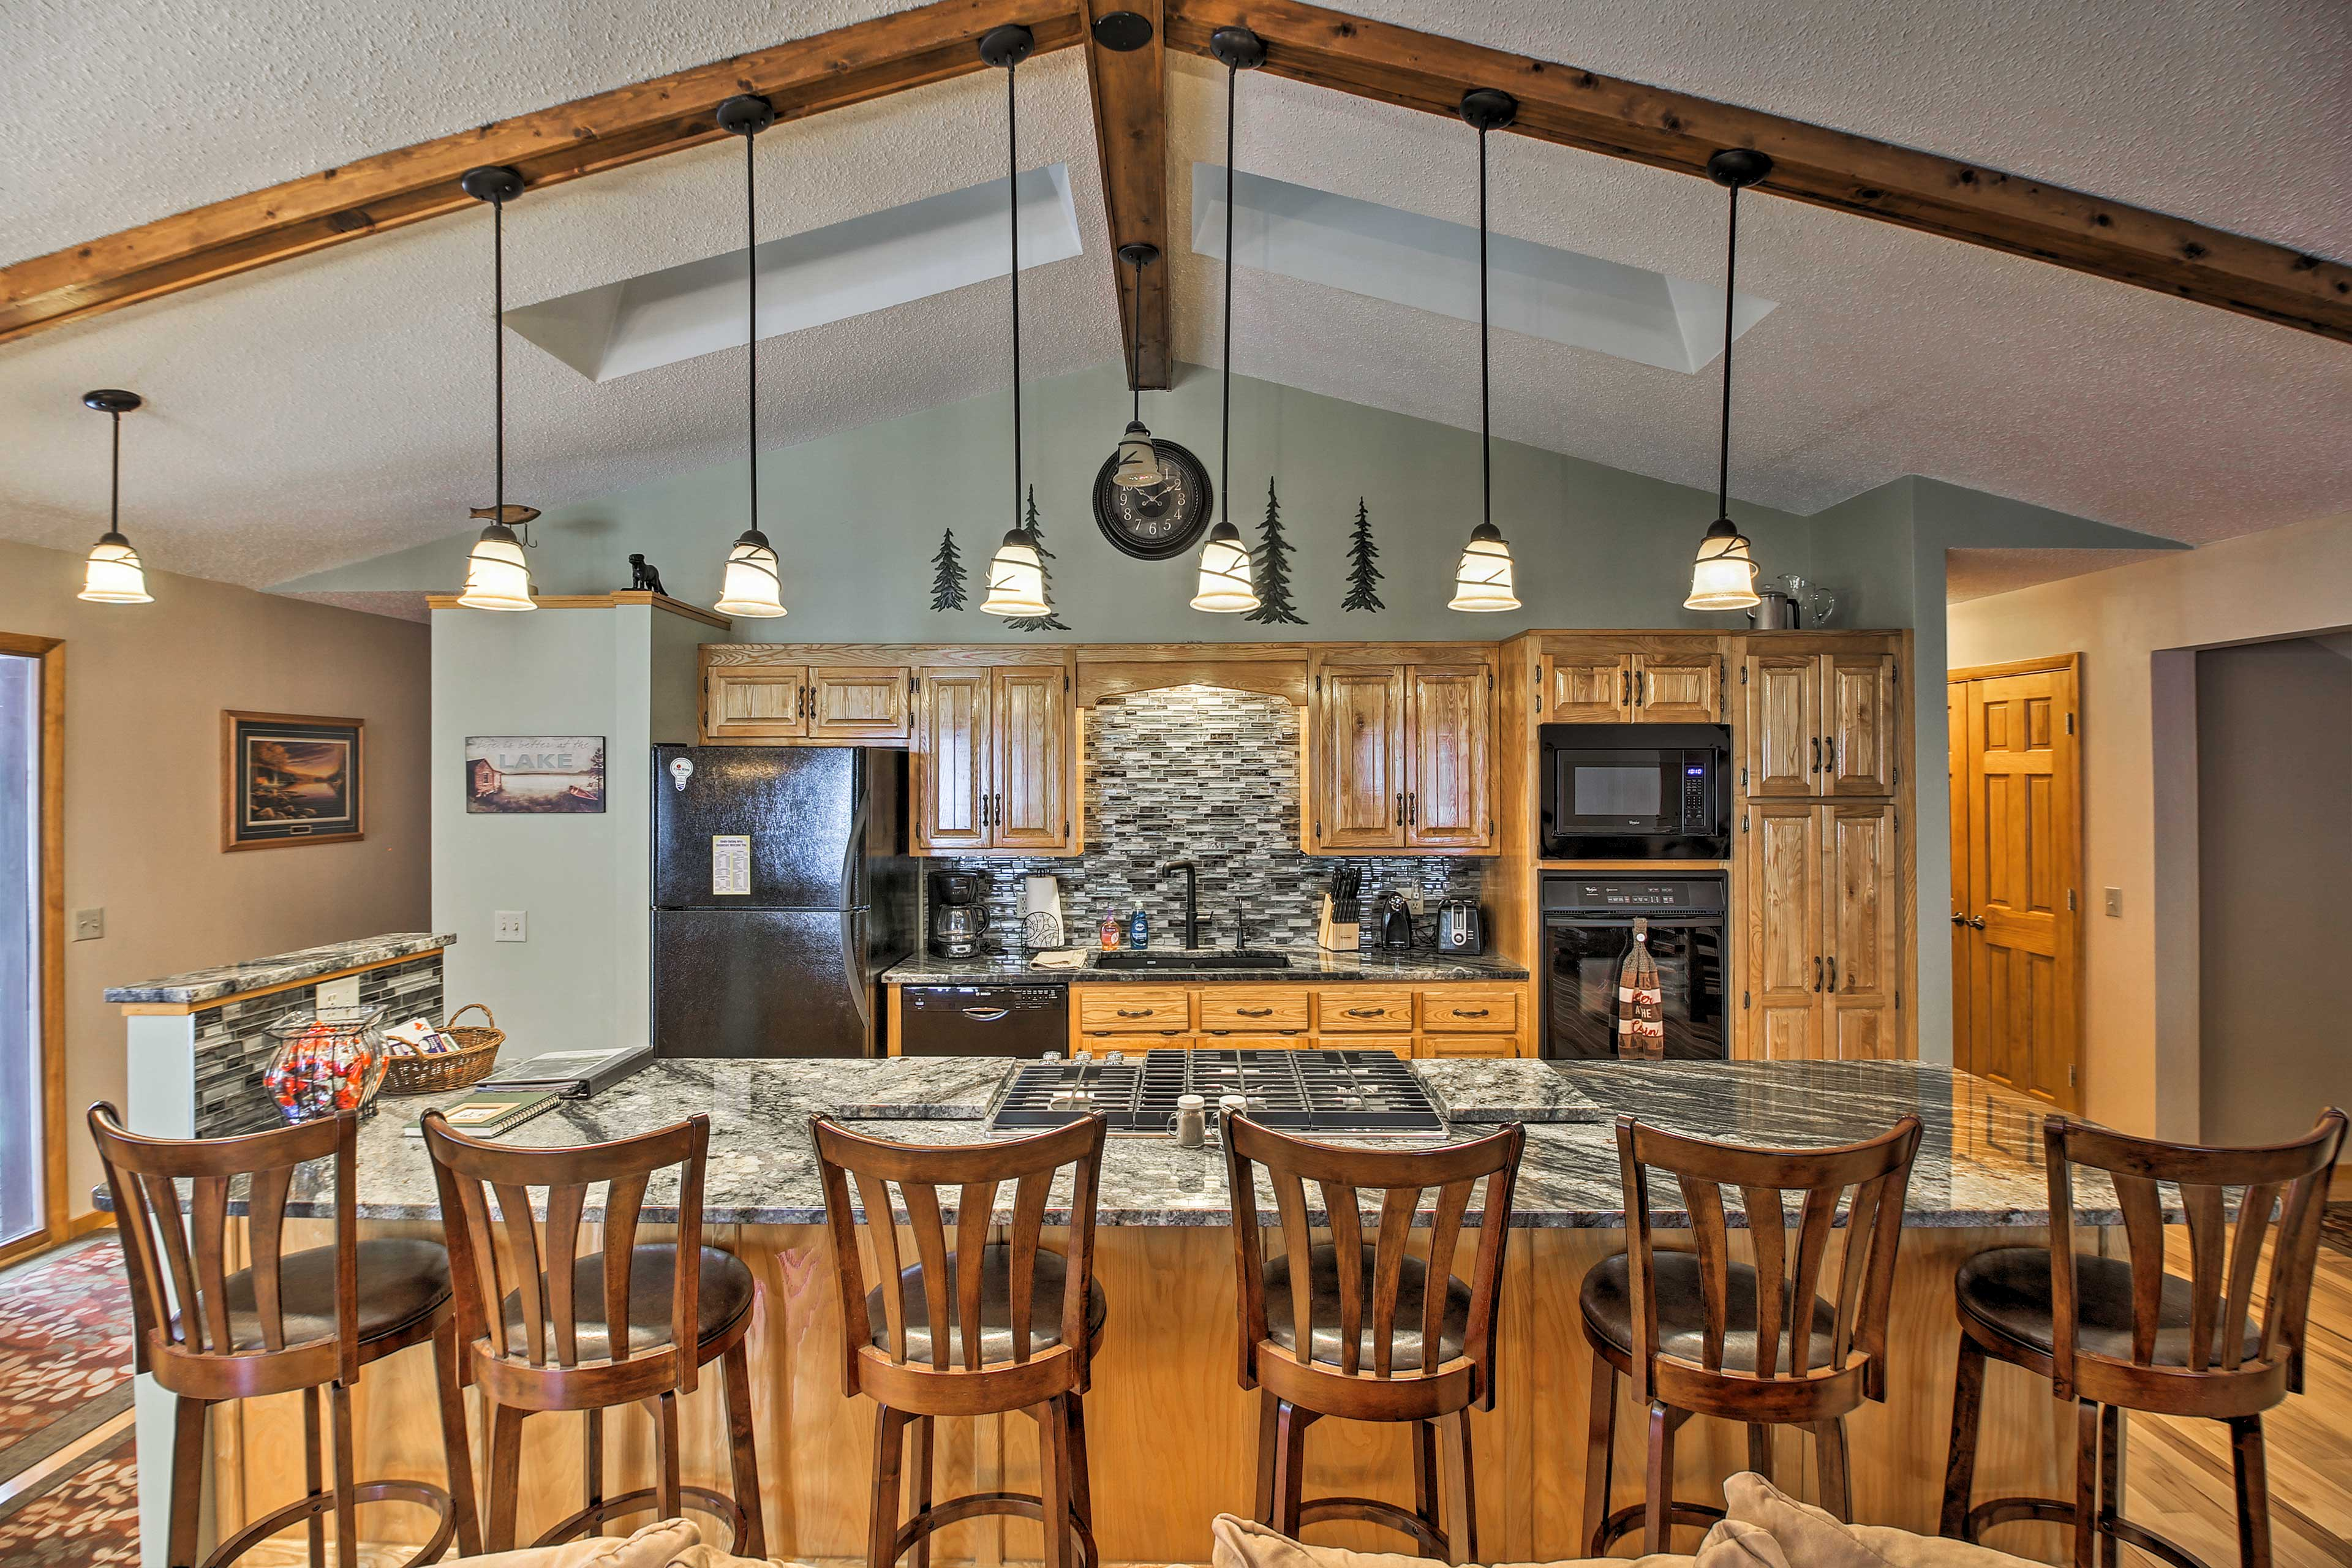 Head to the fully equipped kitchen with granite counters and a large island.